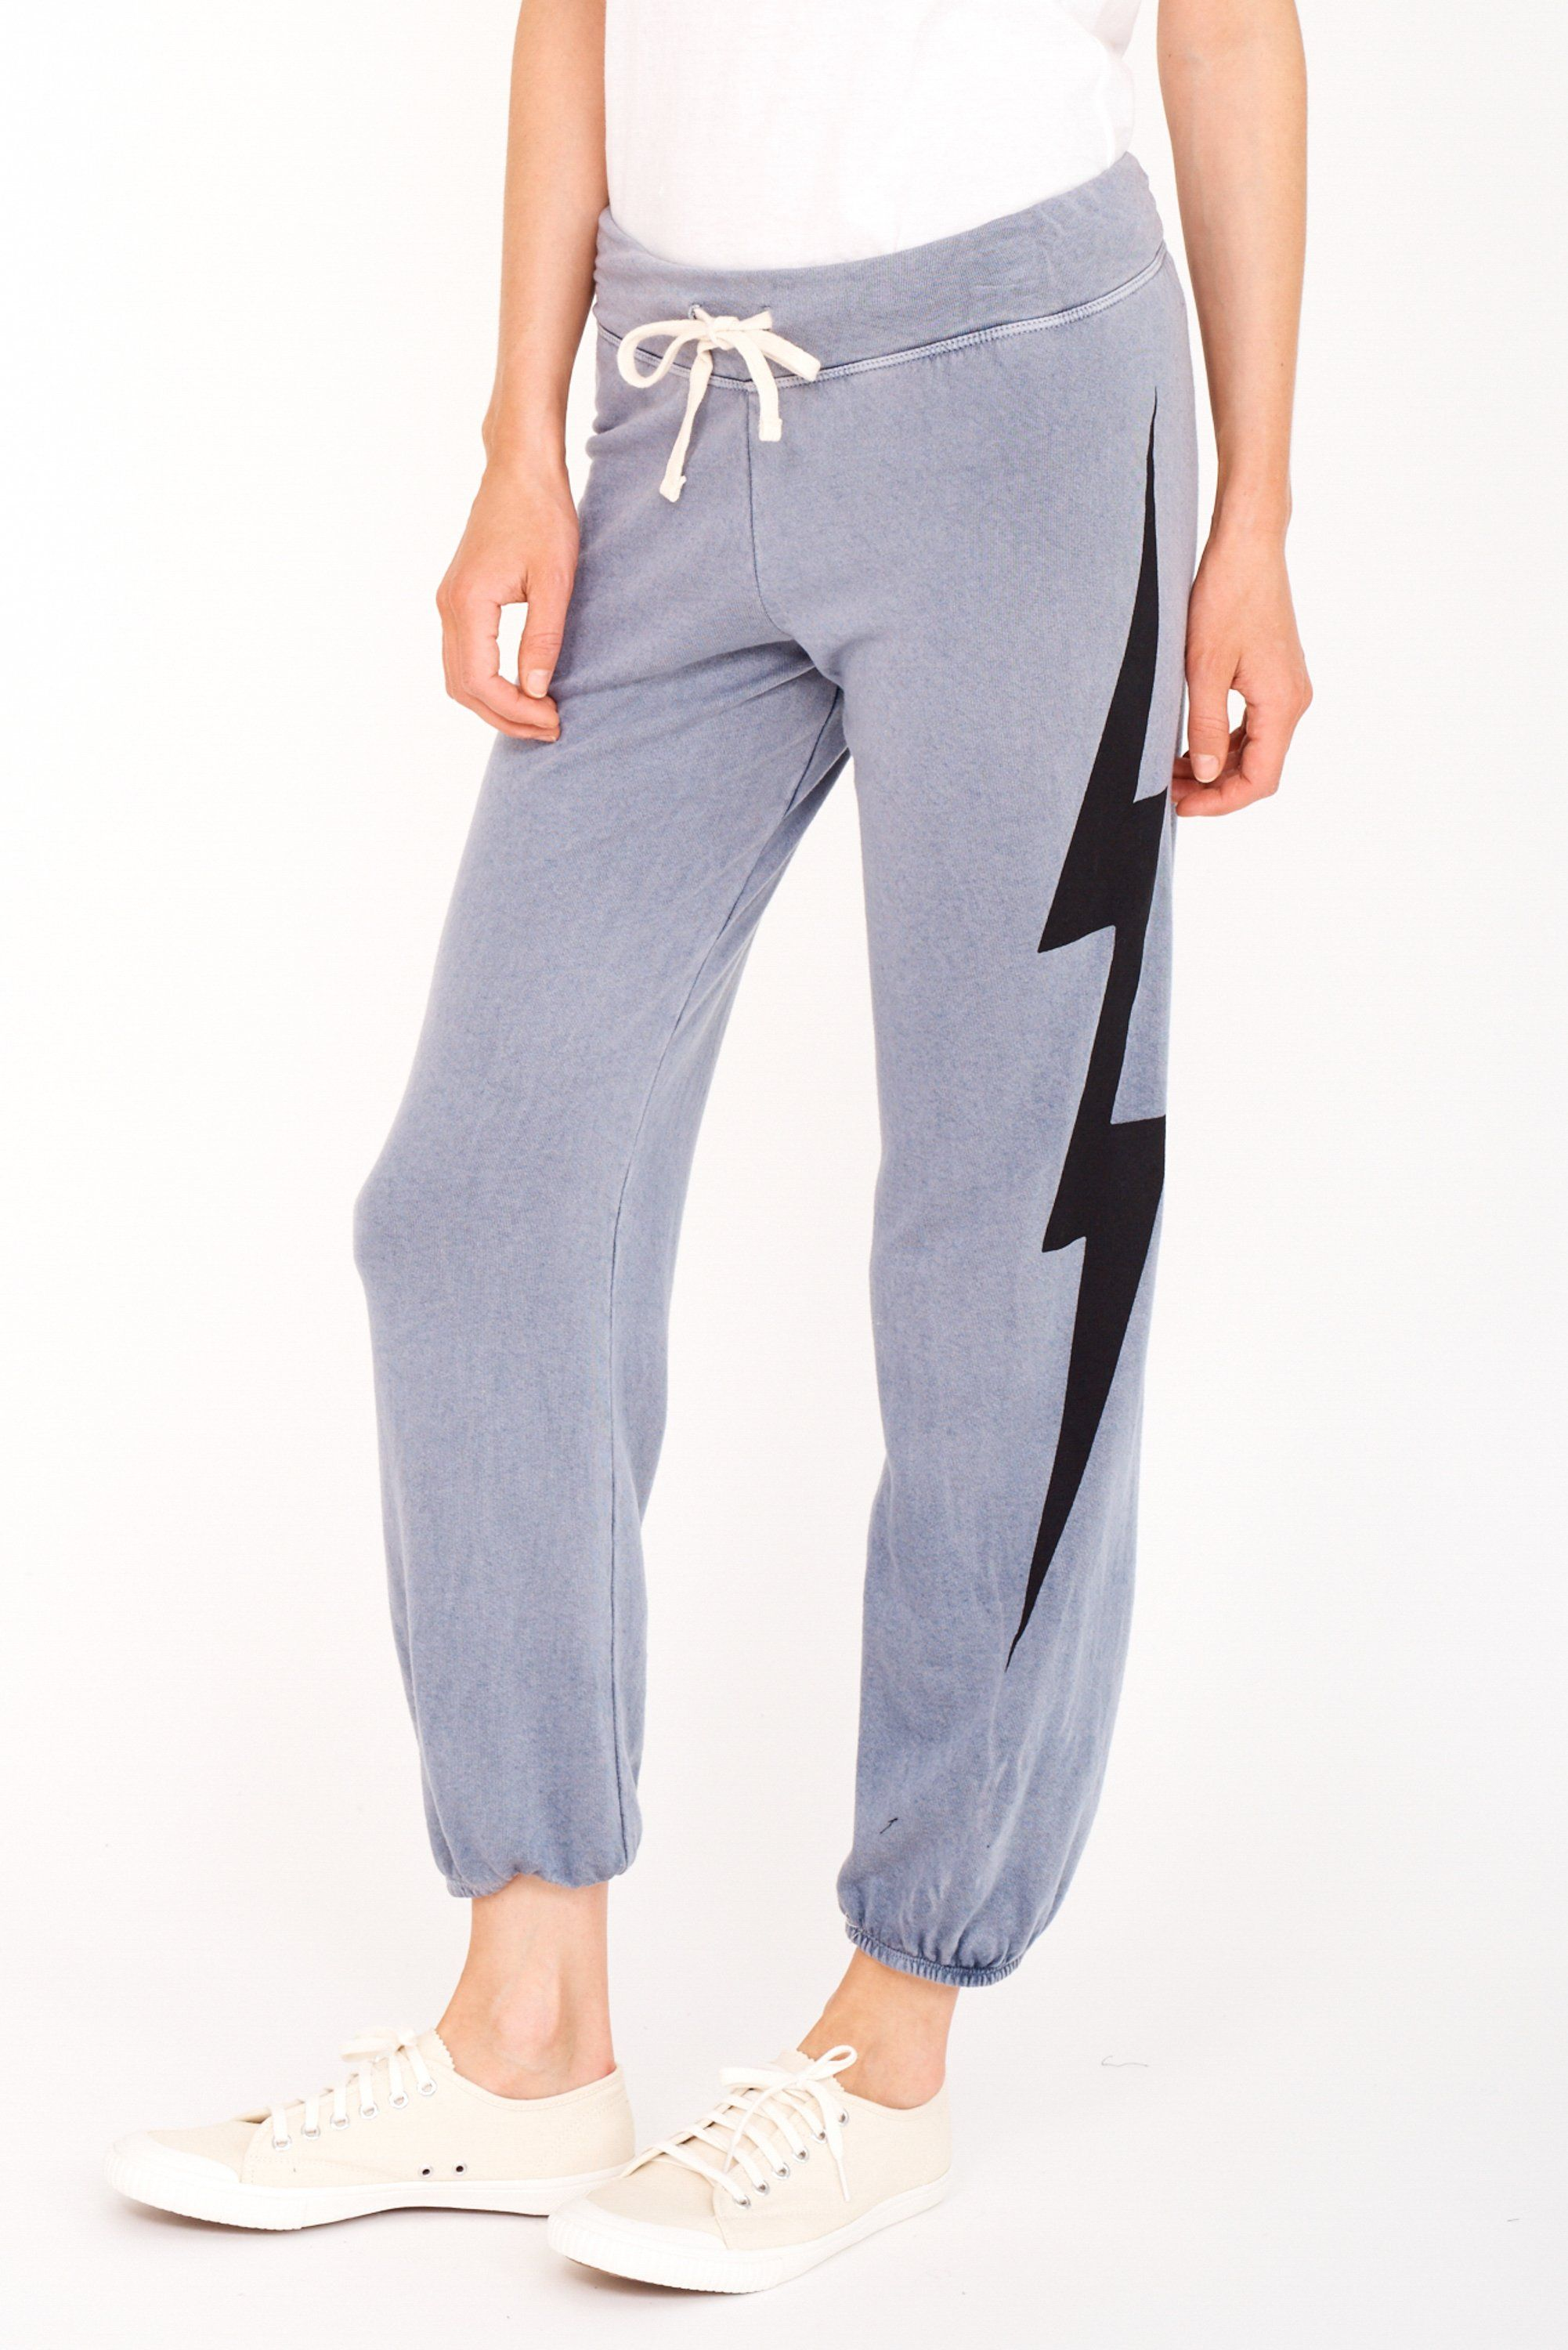 30++ Sweatpants with lightning bolt trends